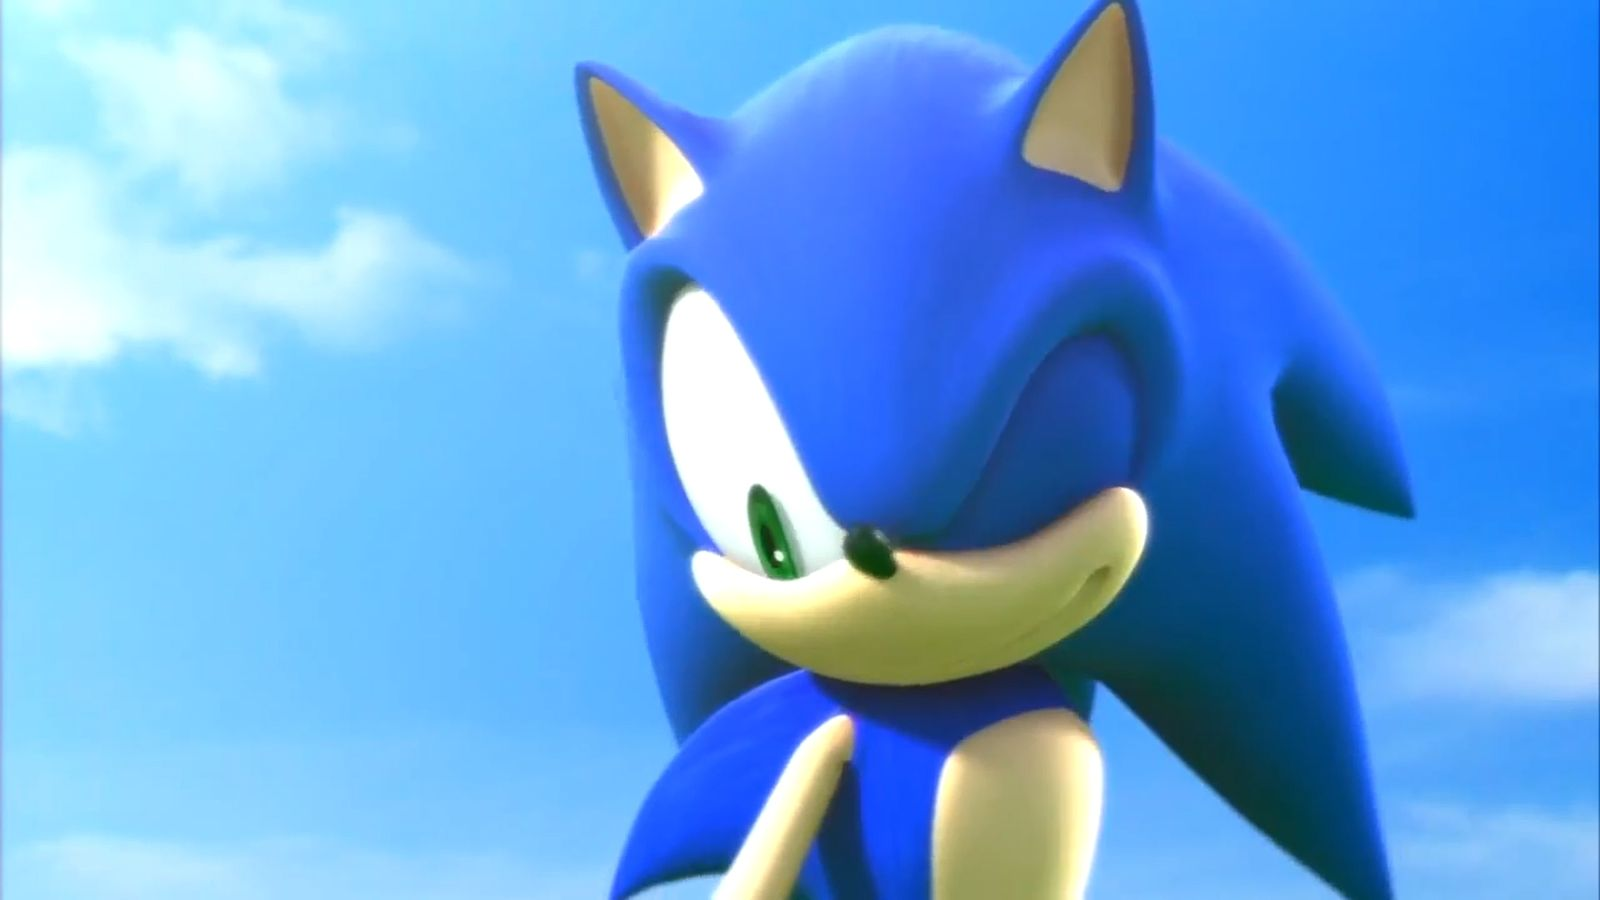 Sonic Live Wallpaper 60 Group Wallpapers Intended For The Most